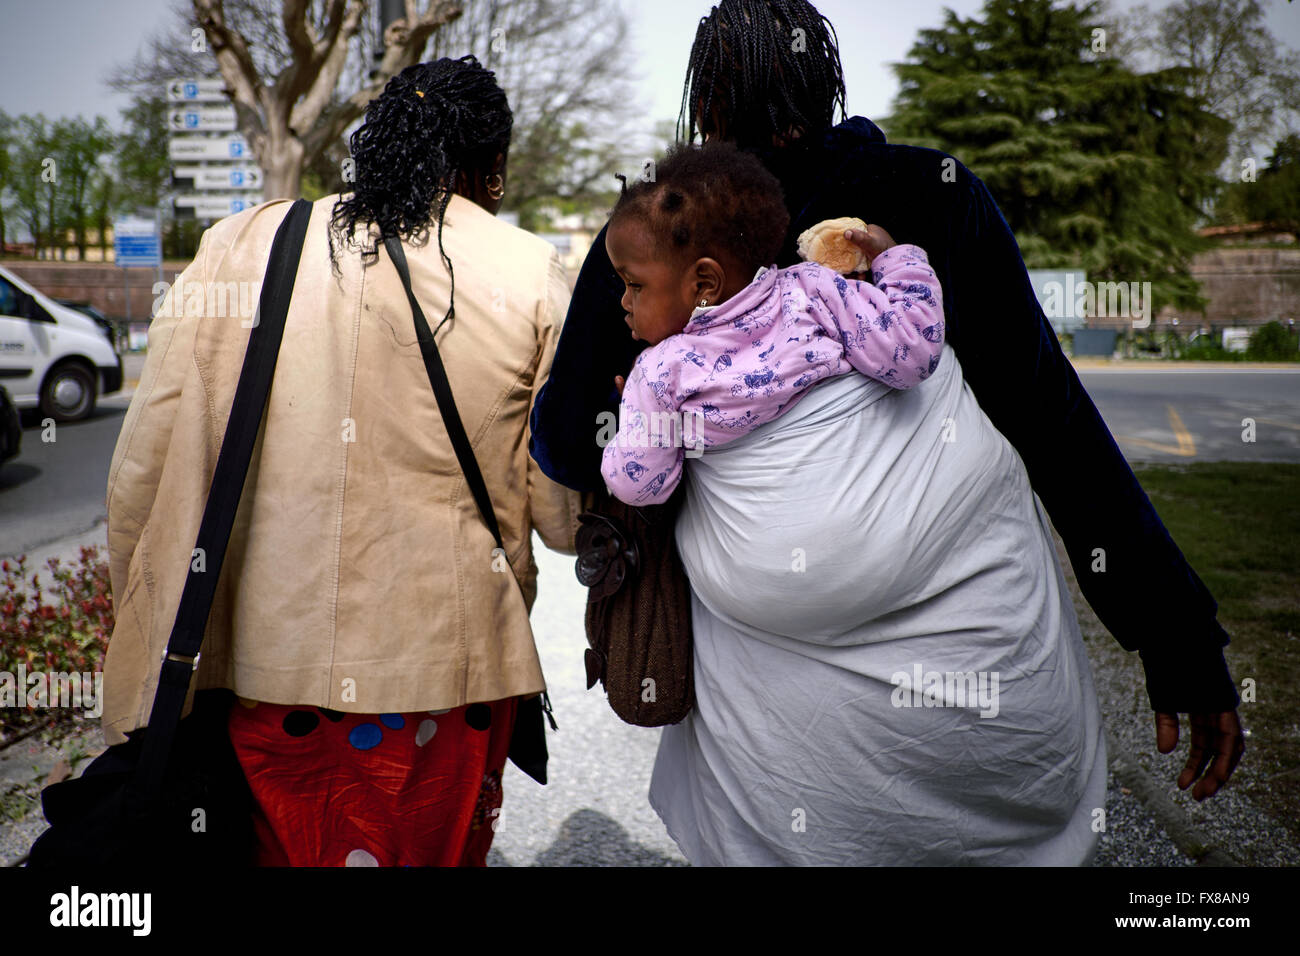 Two black women walking away from camera, one with a young child on her back in a sheet. - Stock Image